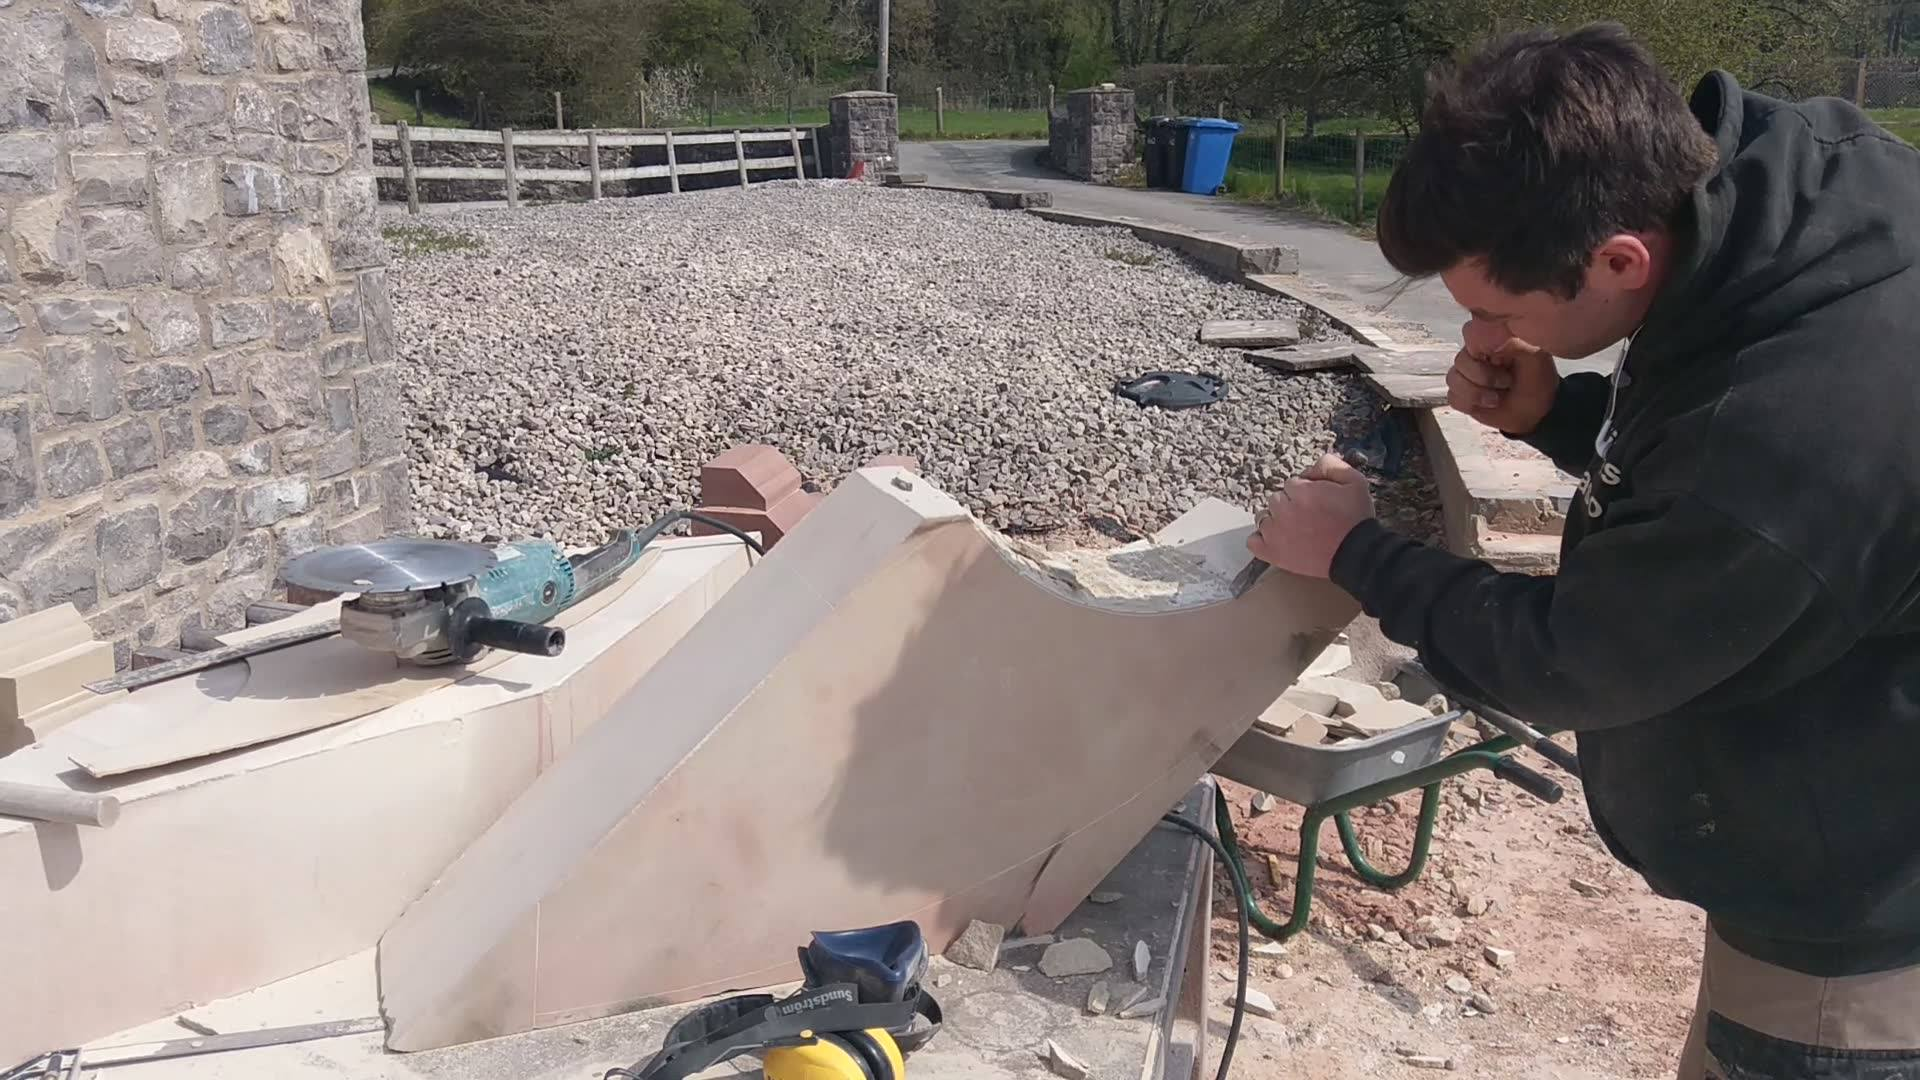 Some roughing out with the 12 inch chissle working down to the lines of this stone section for a tracery window. North Wales, North West, Wirral, Liverpool & Cheshire UK